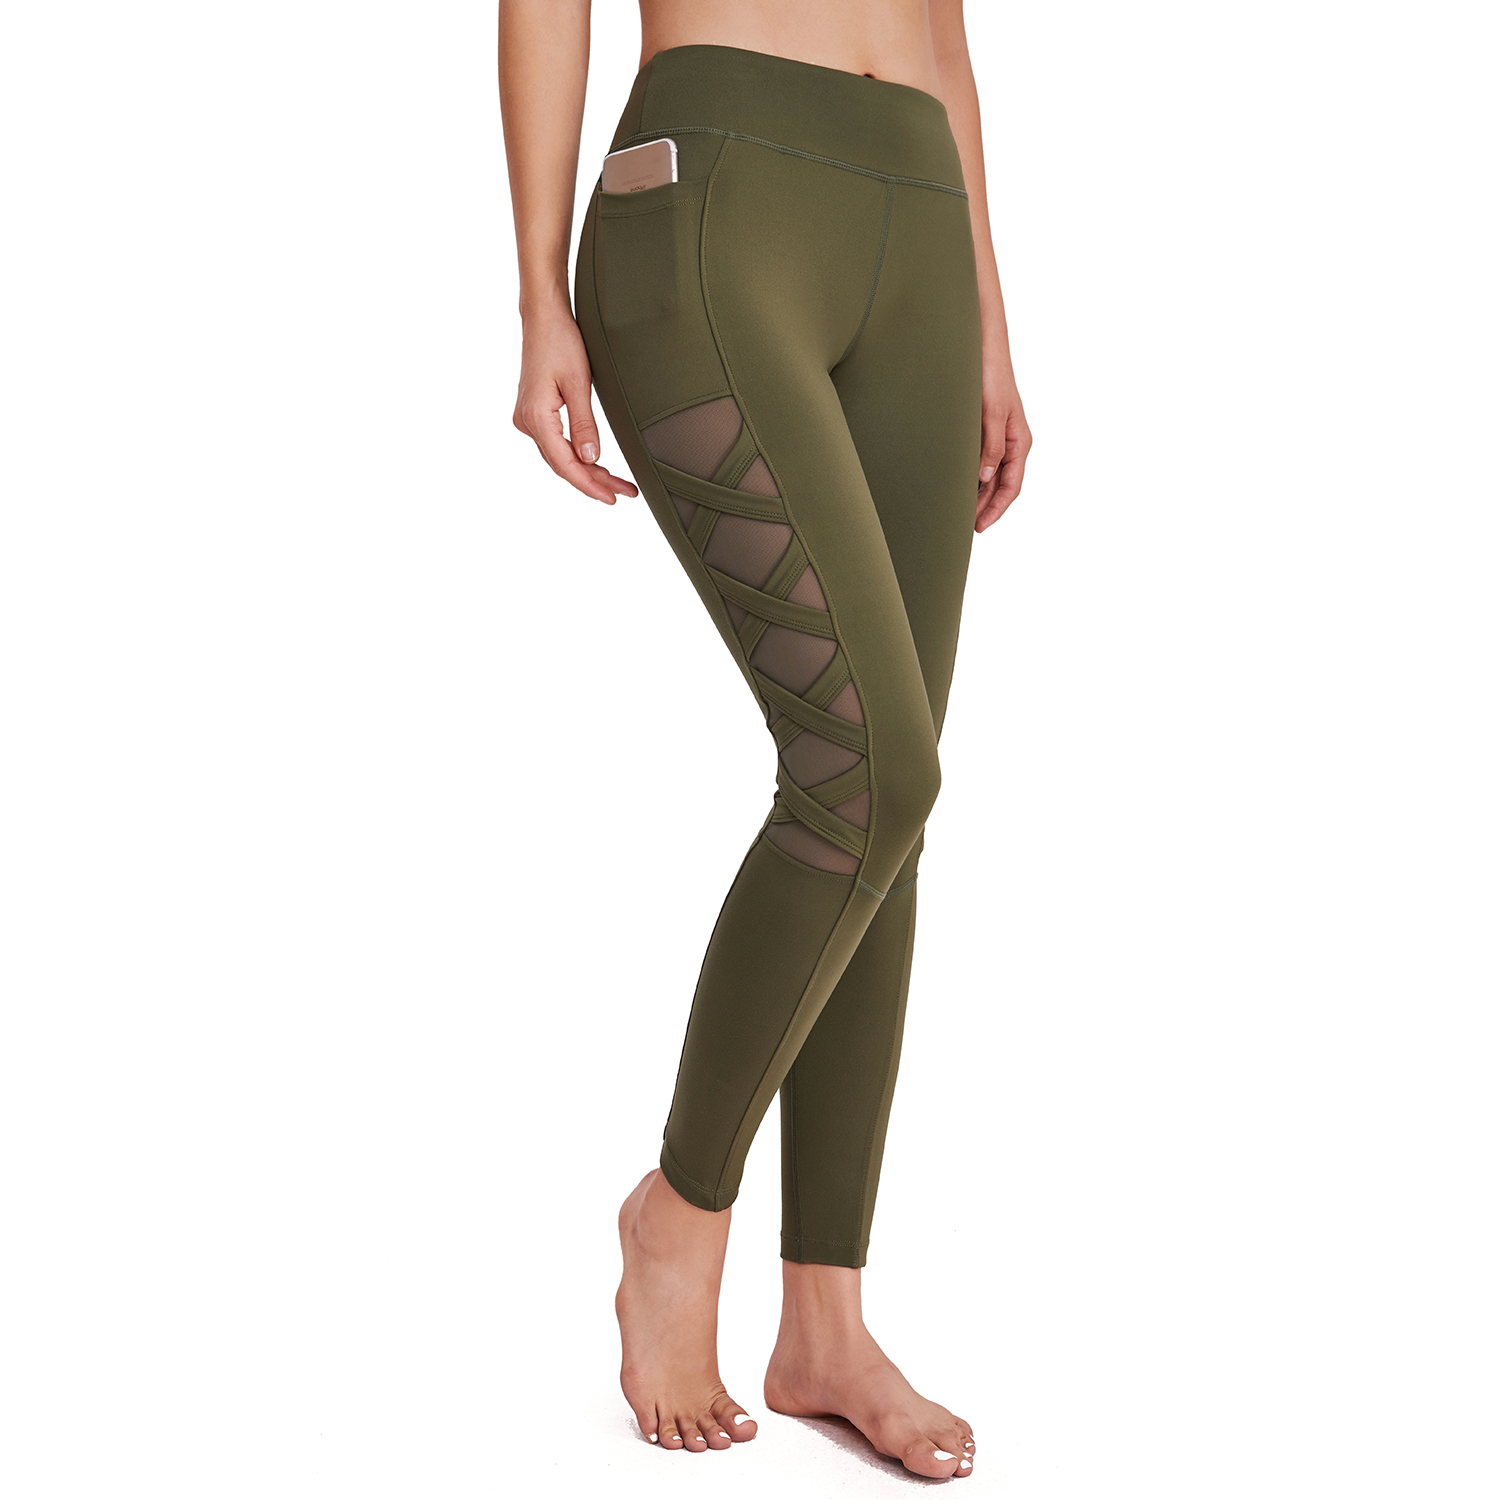 Women's Legging Wear Running Sets Yoga Gym Atheletic Pants, Small Order, Stocklots